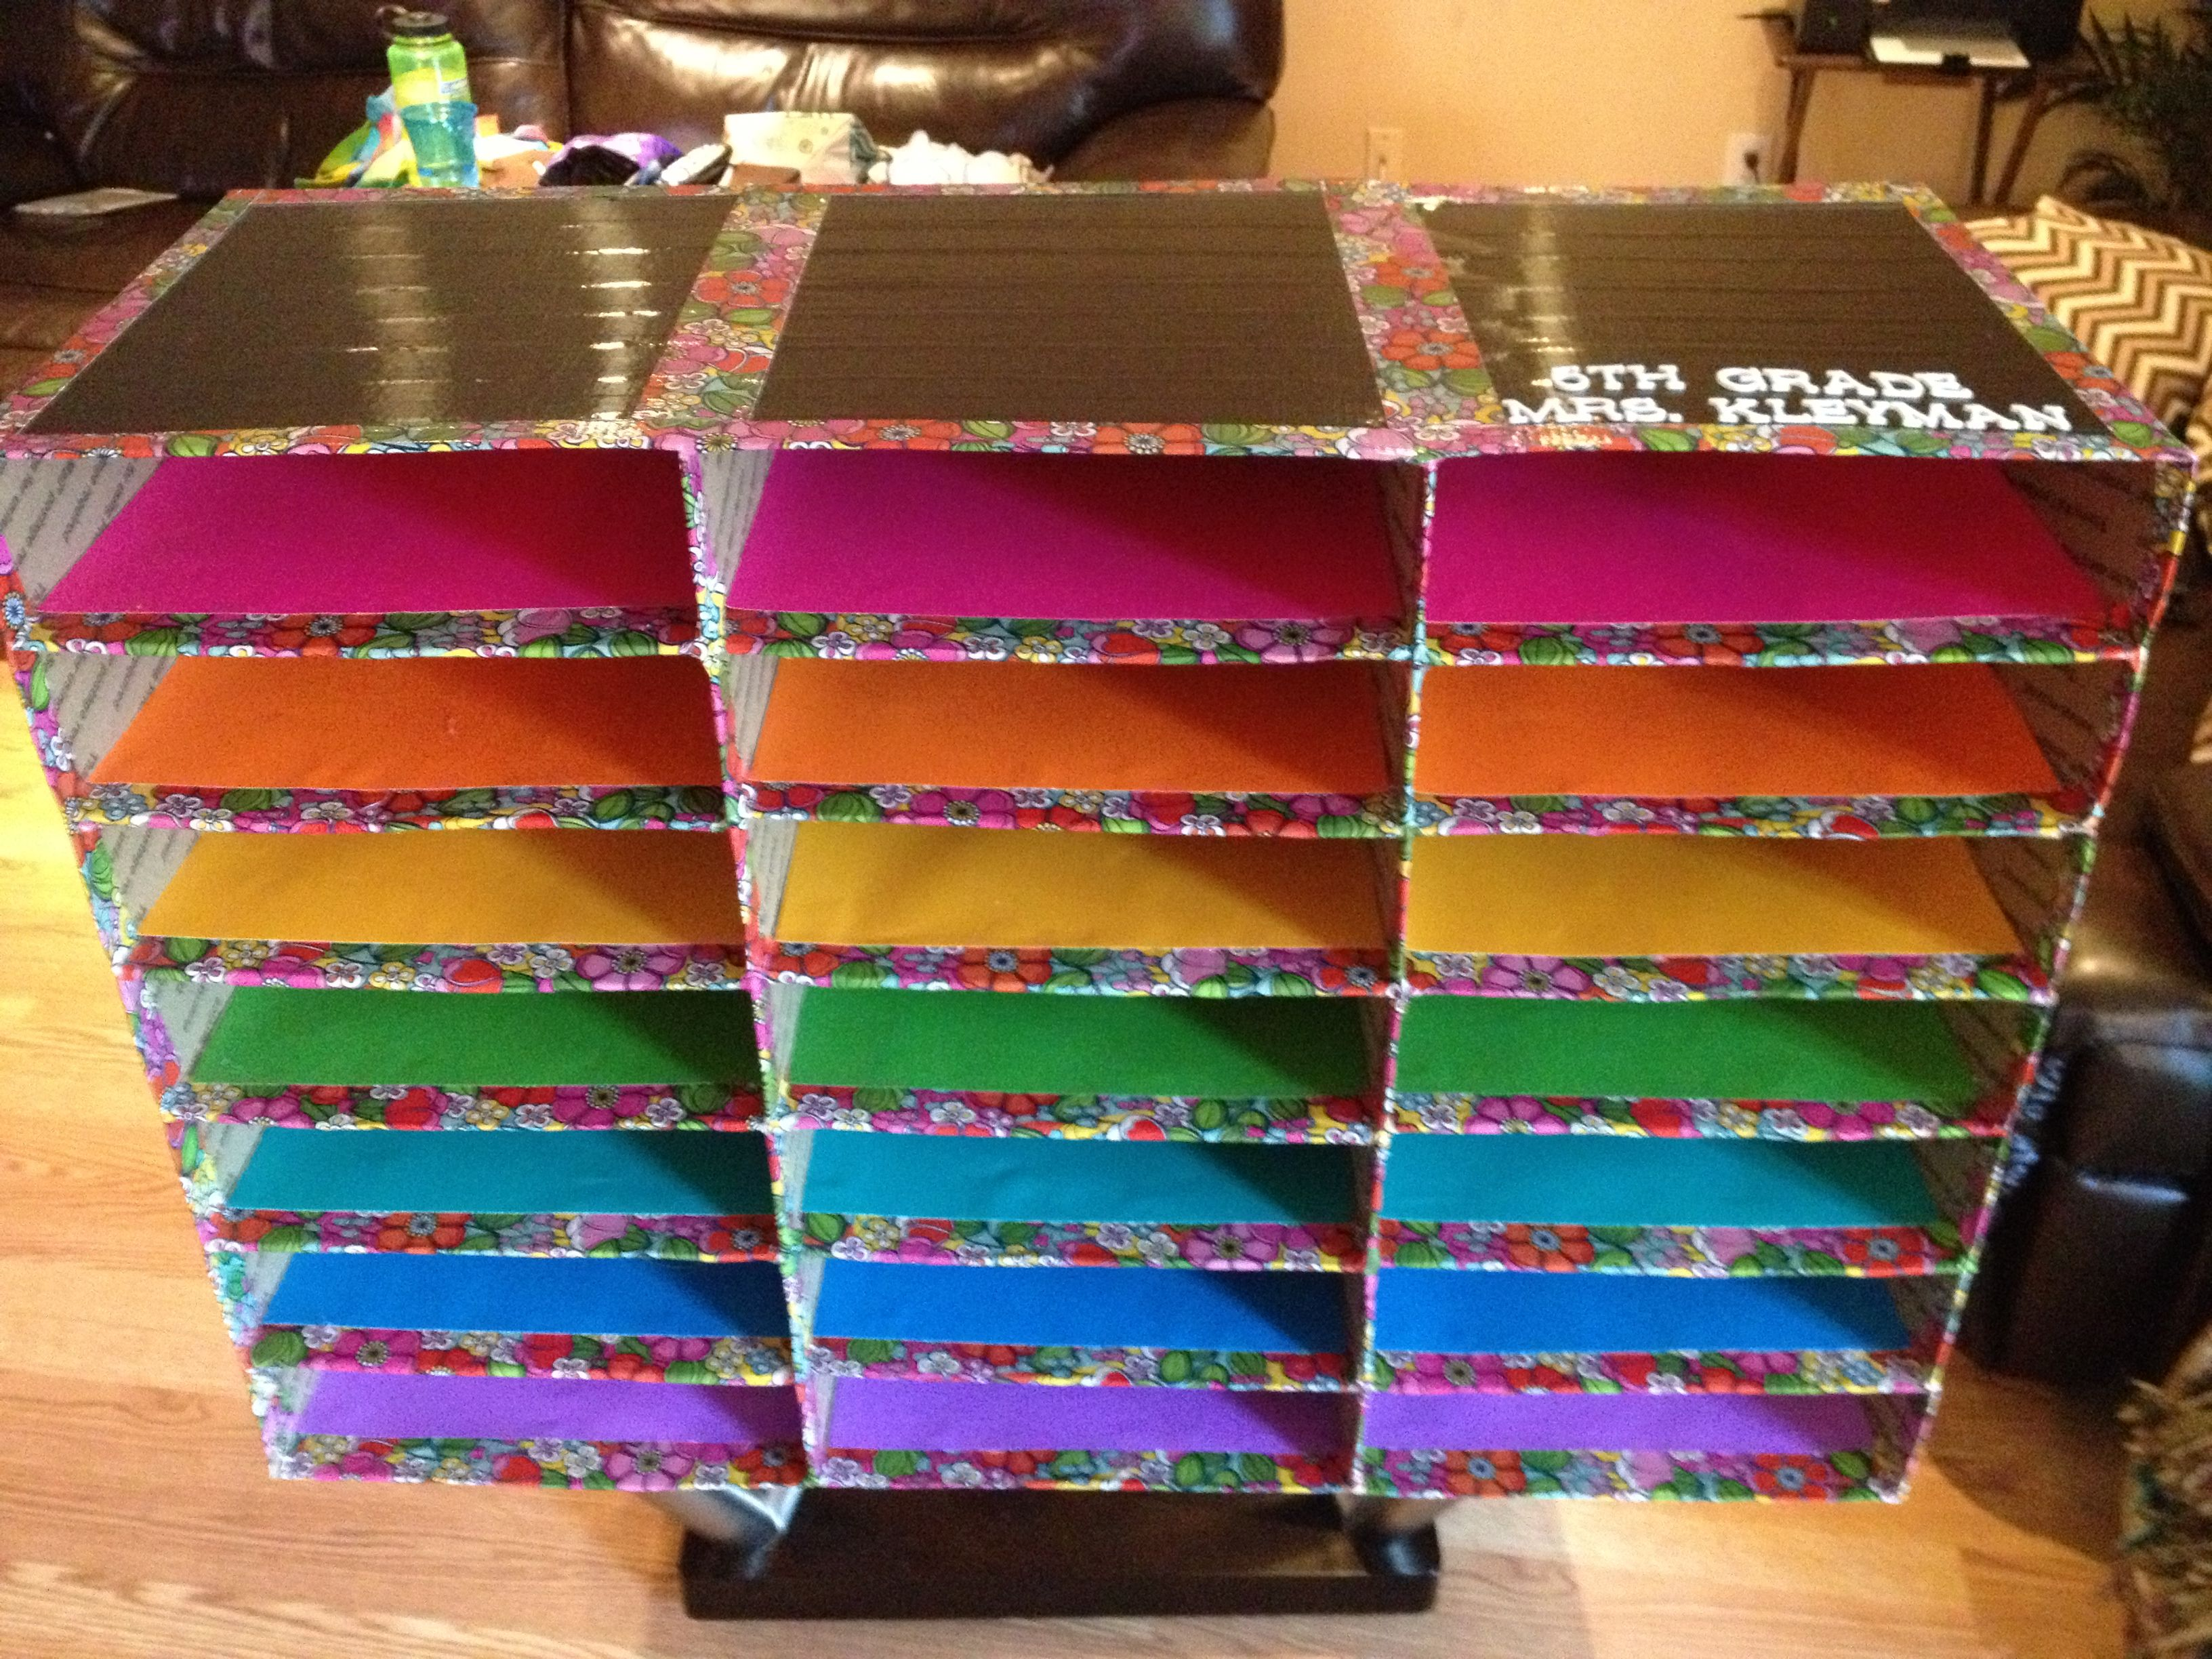 Diy Music Classroom Decorations : My diy classroom mailboxes using flat rate shipping boxes